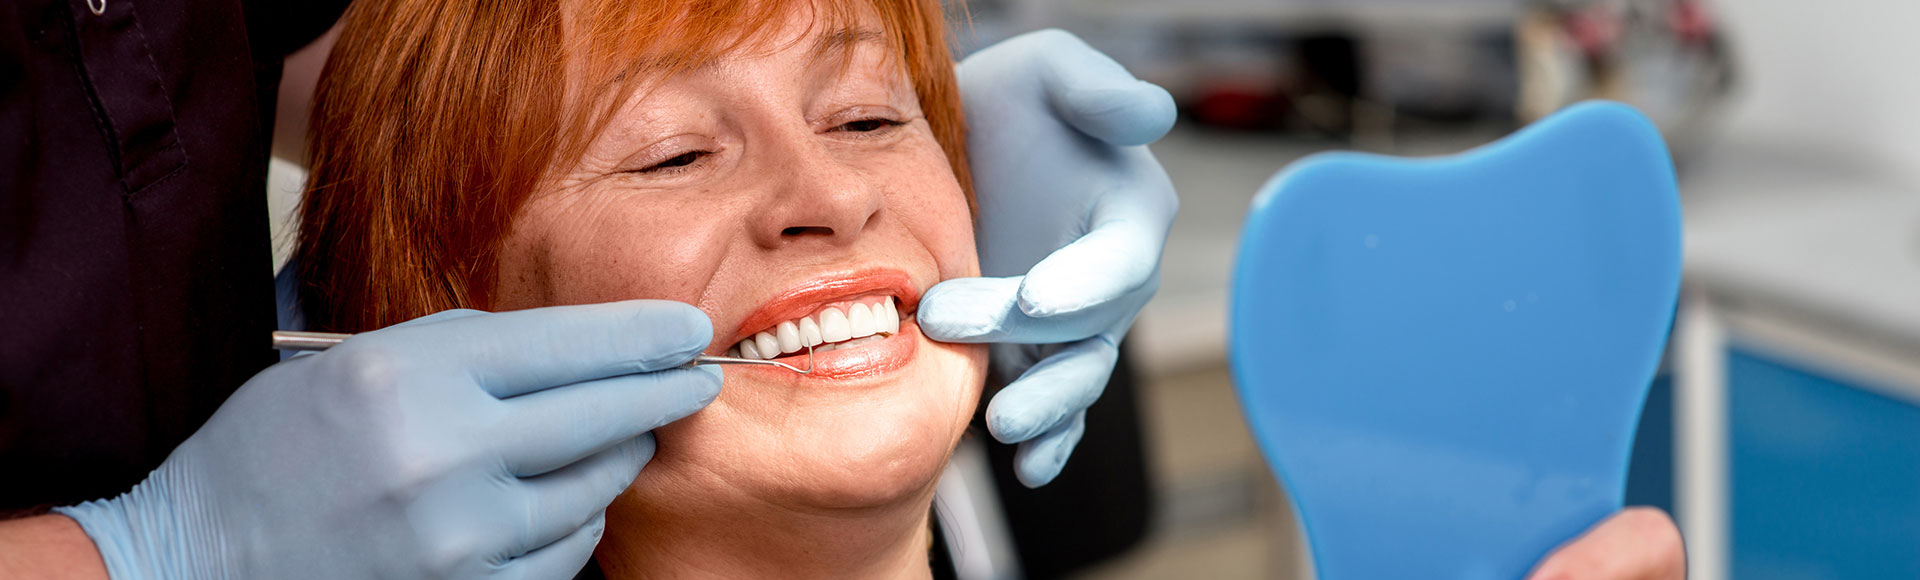 How Often Are Follow-Up Appointments for Dental Implants?